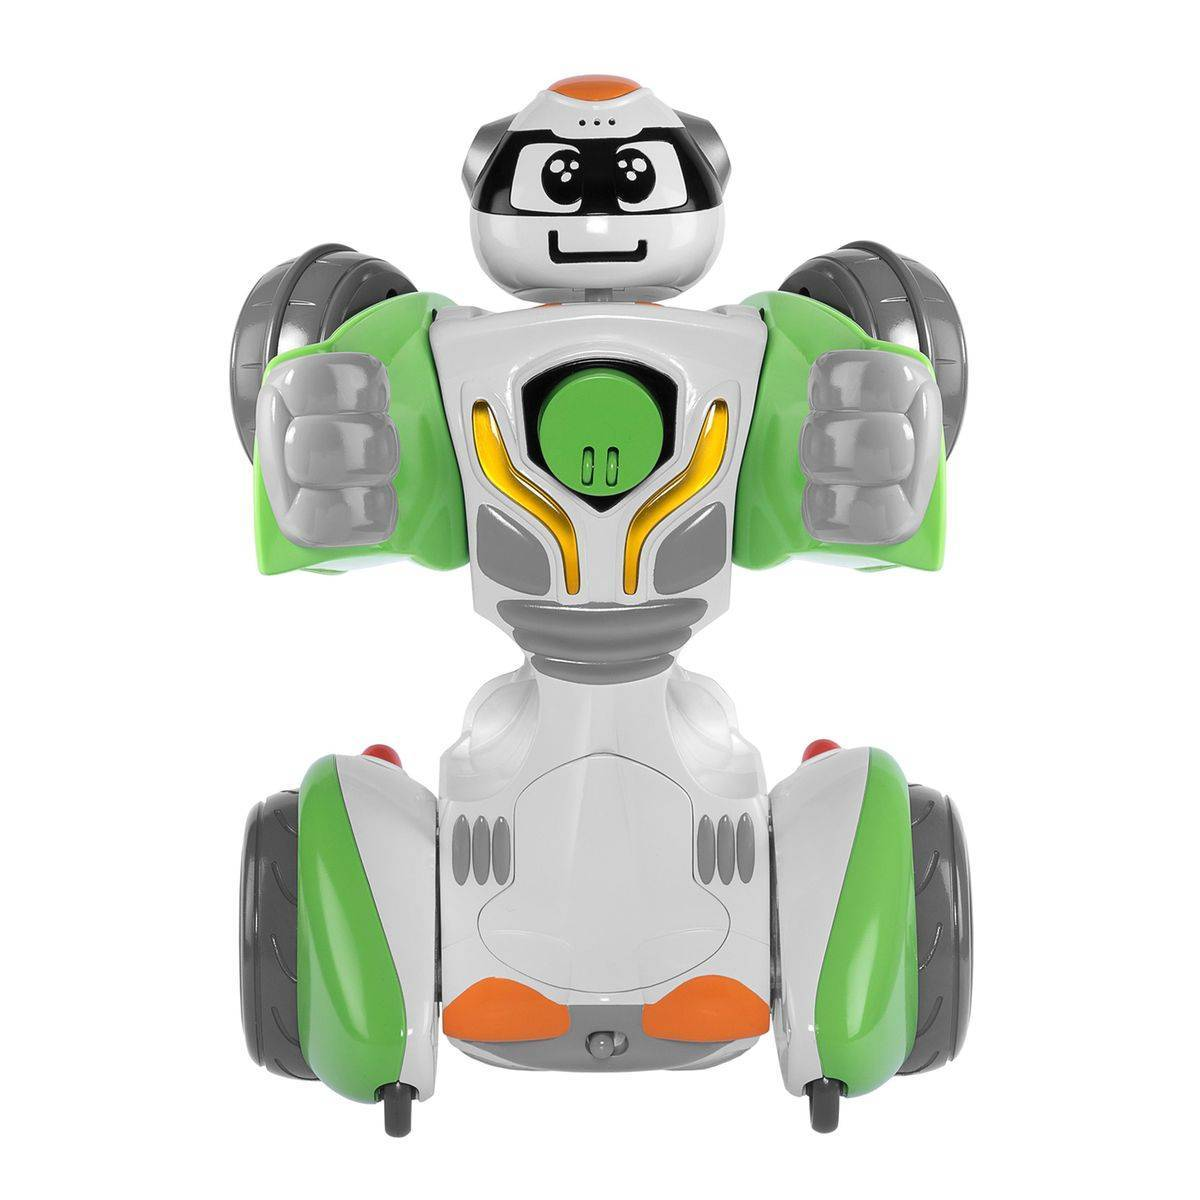 Chicco Voiture transformable en robot 7823000000 - CHICCO